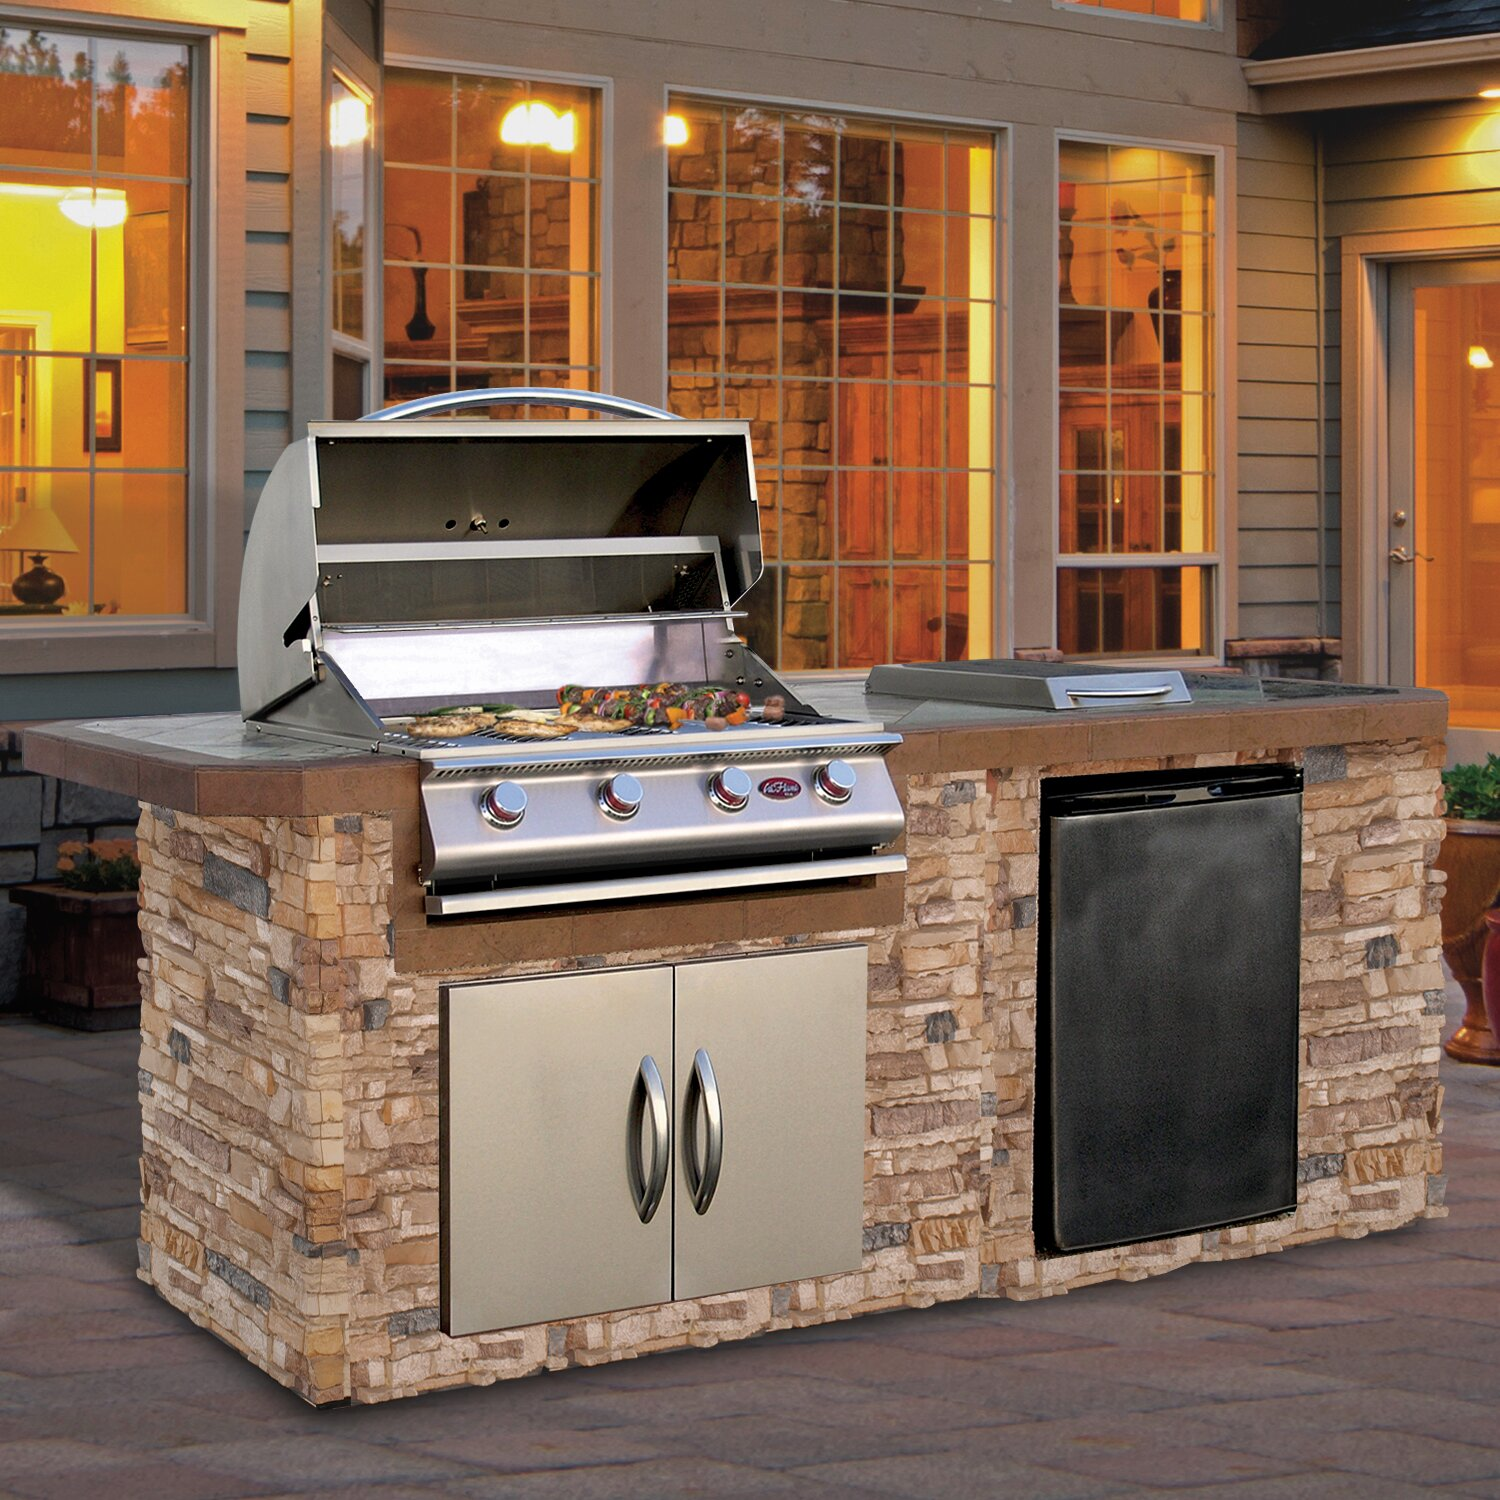 CalFlame 4-Burner Built-In Propane Gas Grill with Cabinet | Wayfair